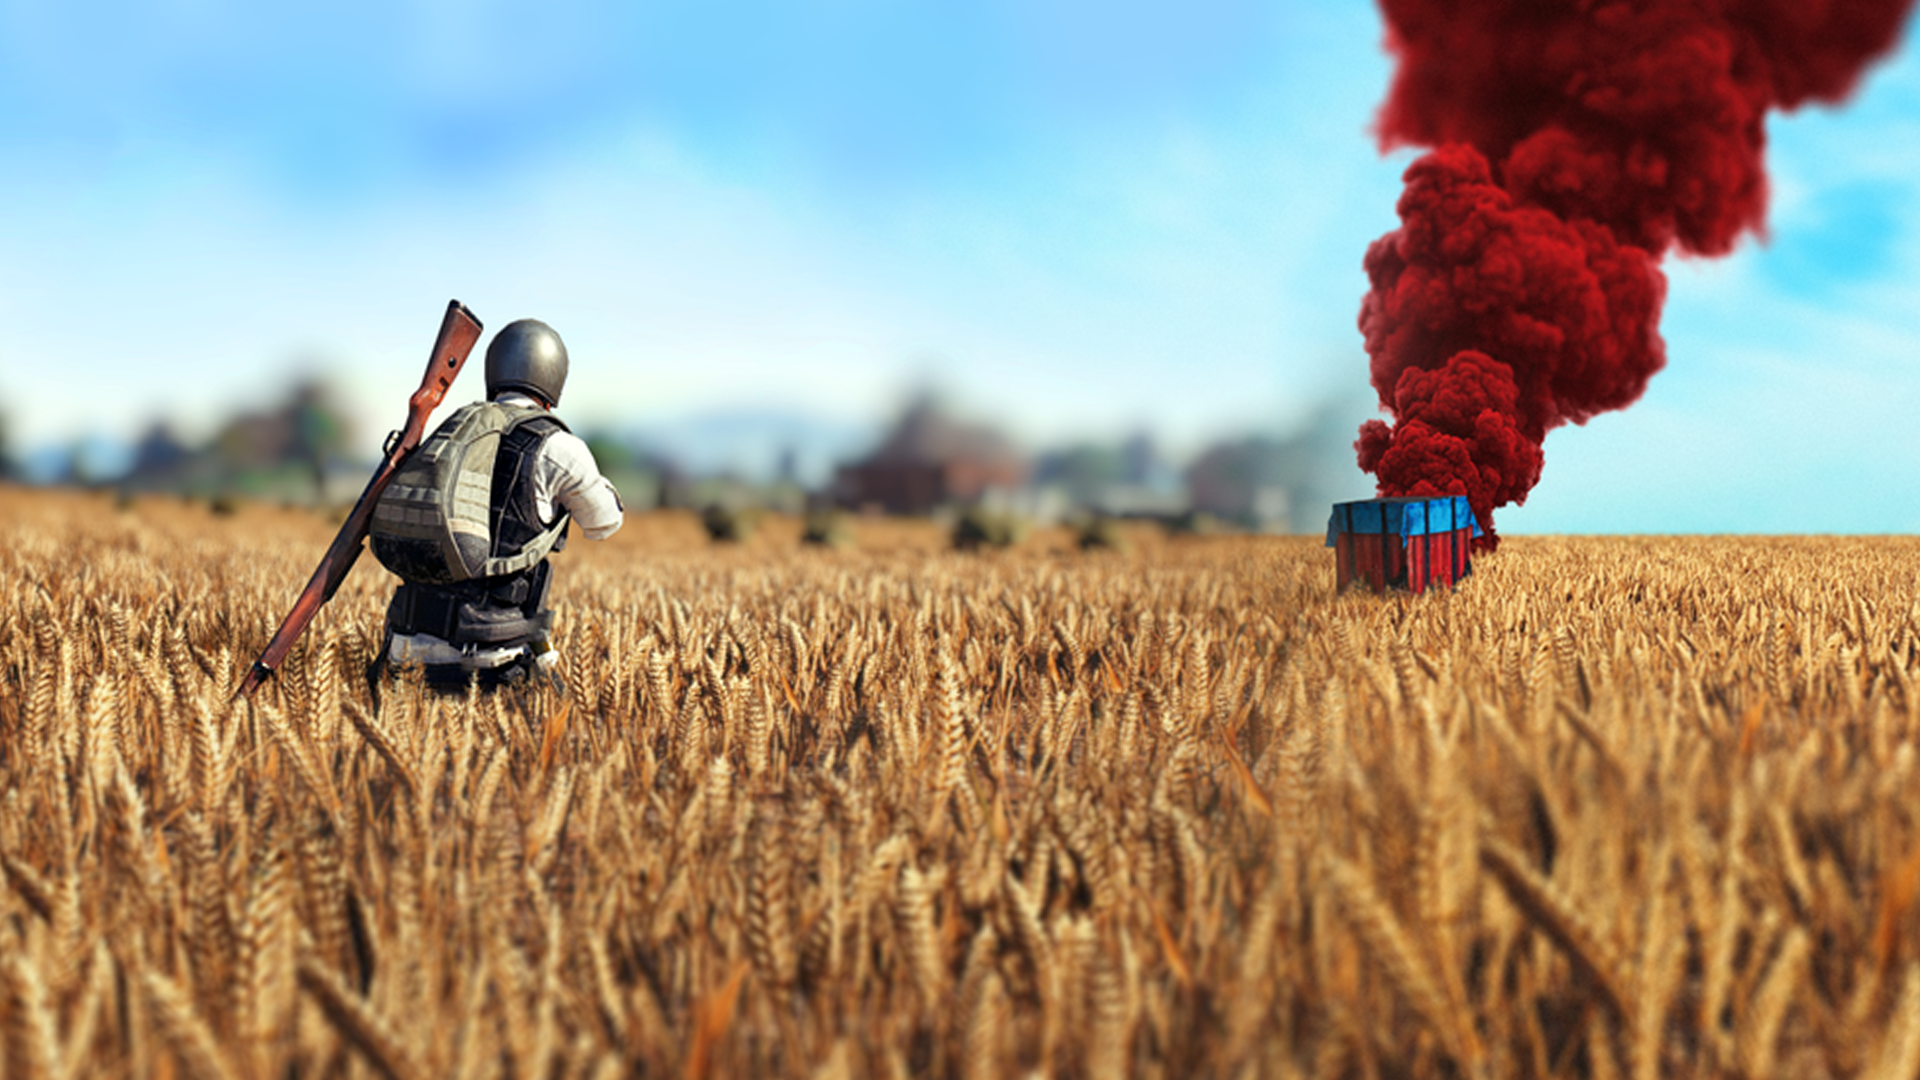 Pubg Lite Wallpaper Hd: Pubg Papel De Parede HD